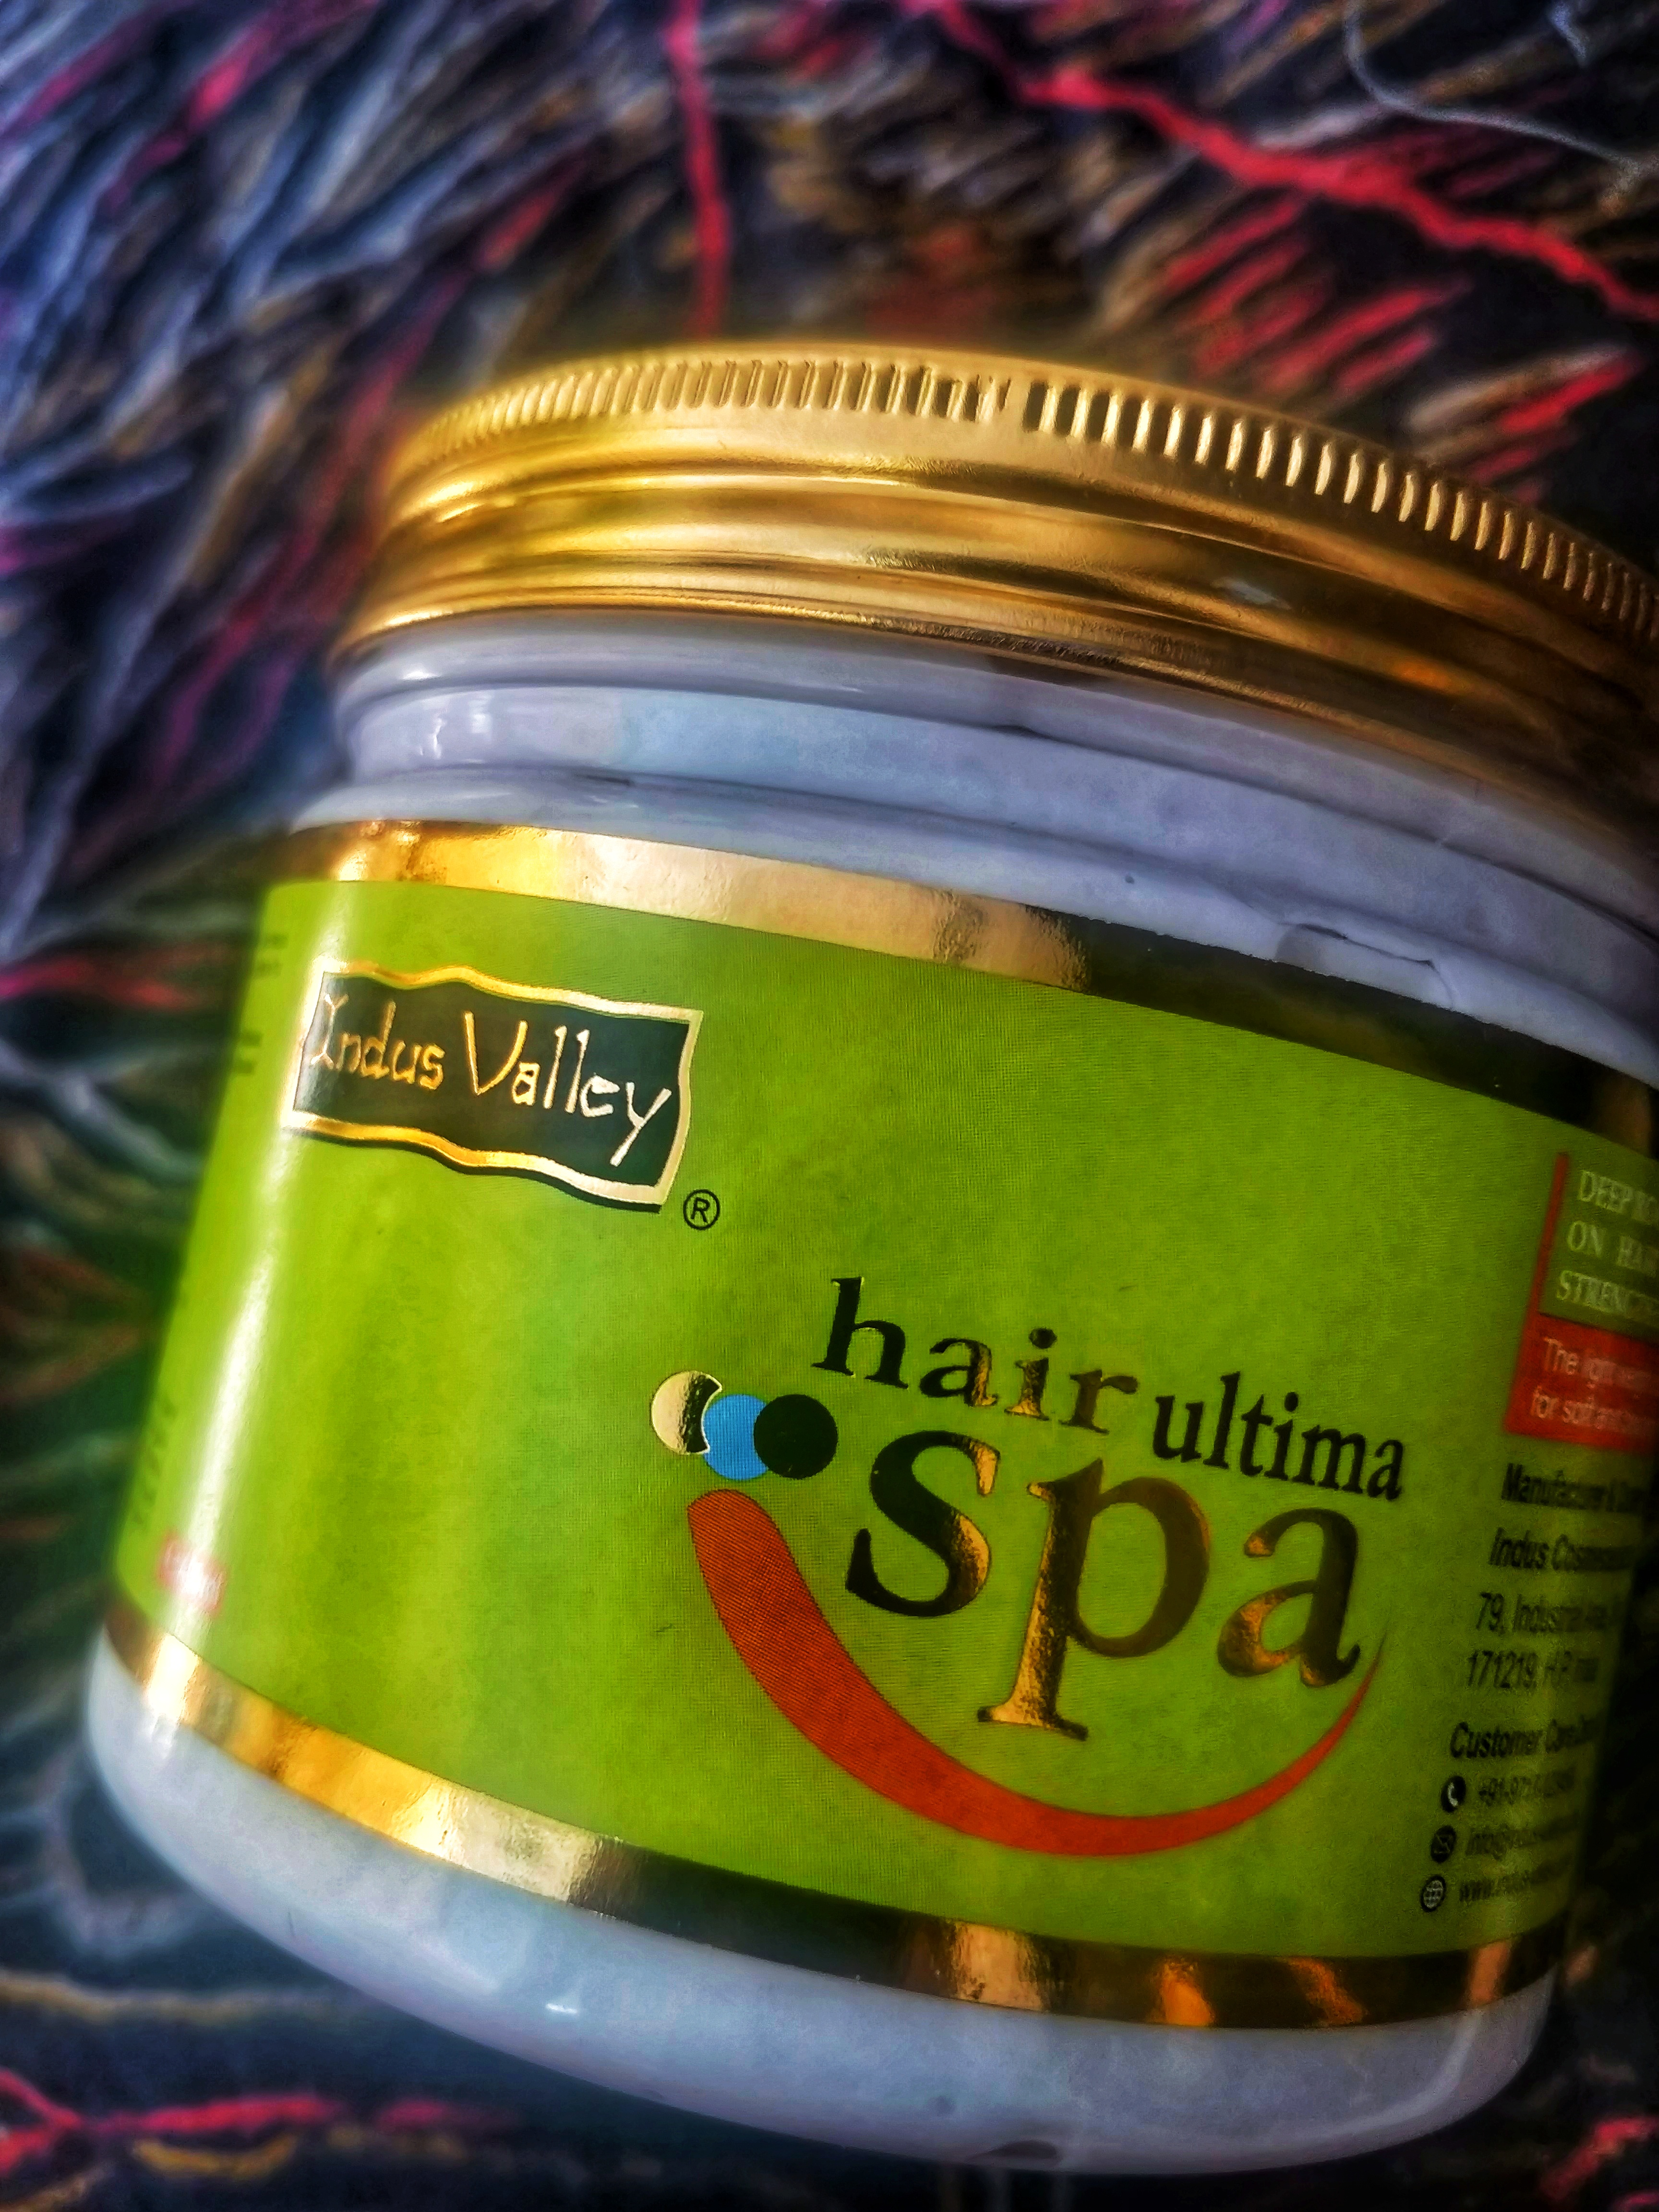 Indus Valley Hair Ultima Spa-Suitable for frizzy hair-By sri._.reviwer